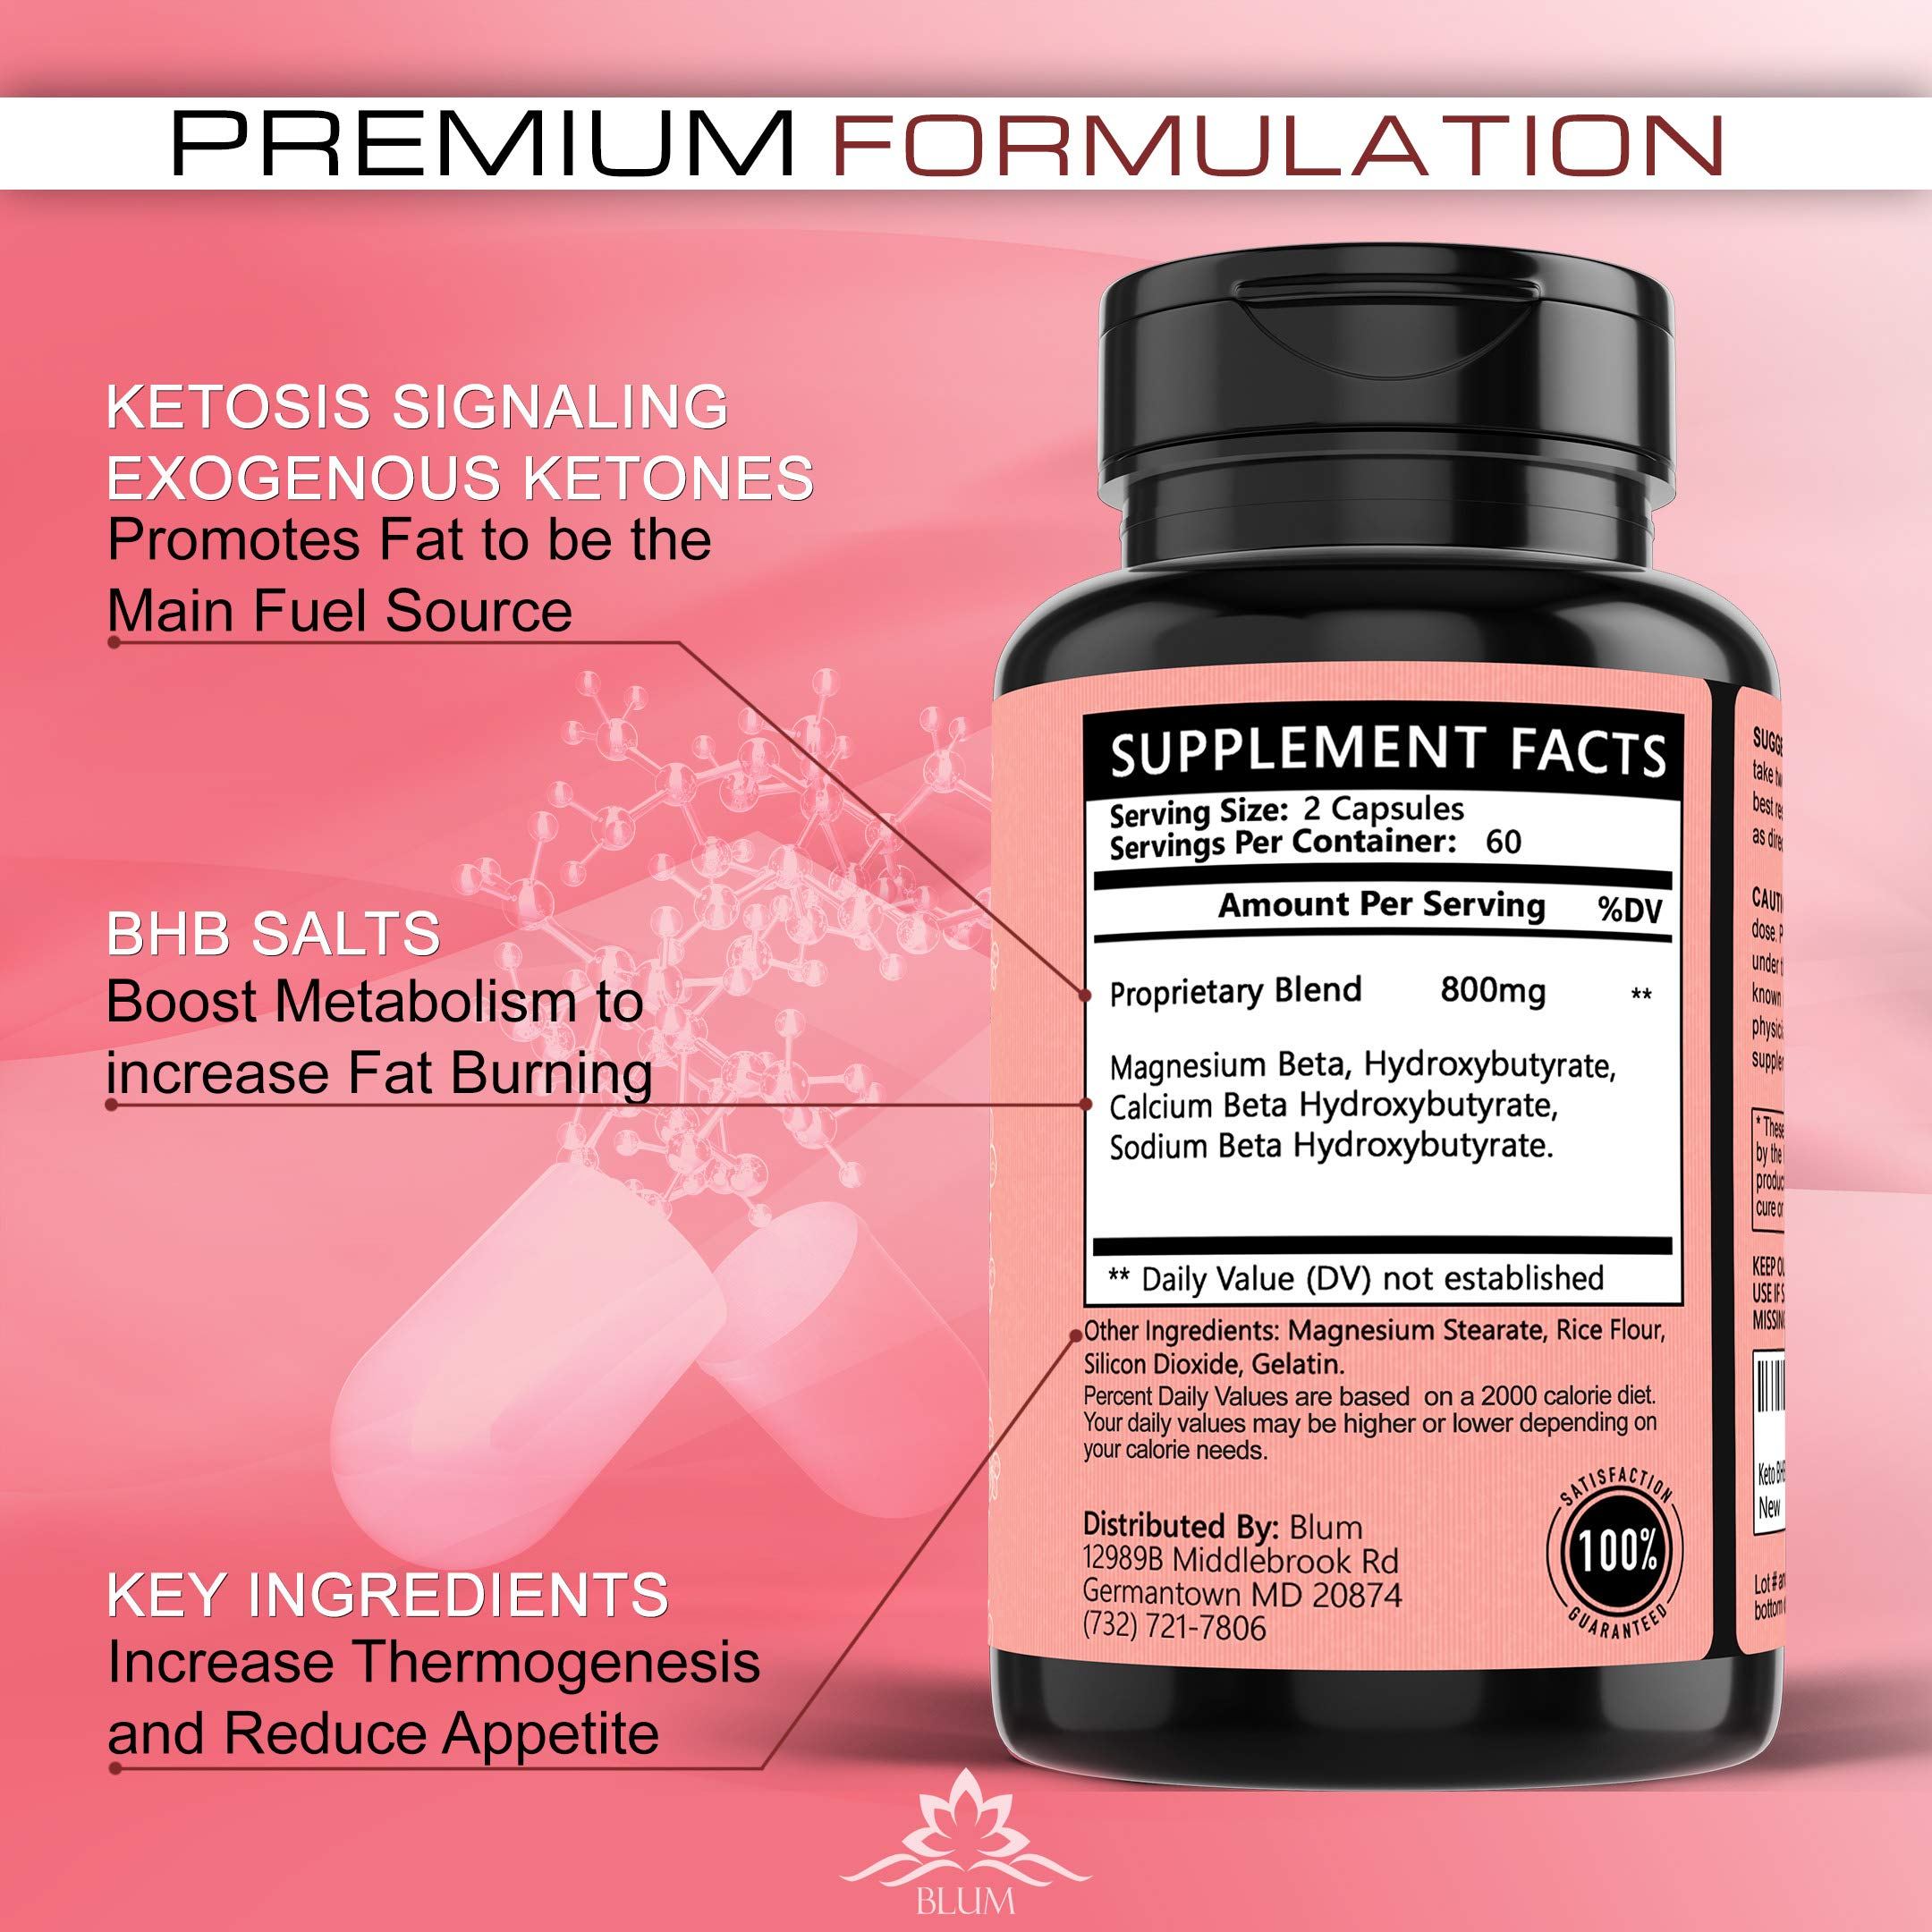 Keto Pills Weight Loss Supplements Keto Diet Pills for Ketosis | Advanced BHB Exogenous Ketones 800mg Capsules for Rapid Fat Burn, Suppress Appetite, Increase Metabolism, Energy and Mental Focus 120ct by Ovillow (Image #7)